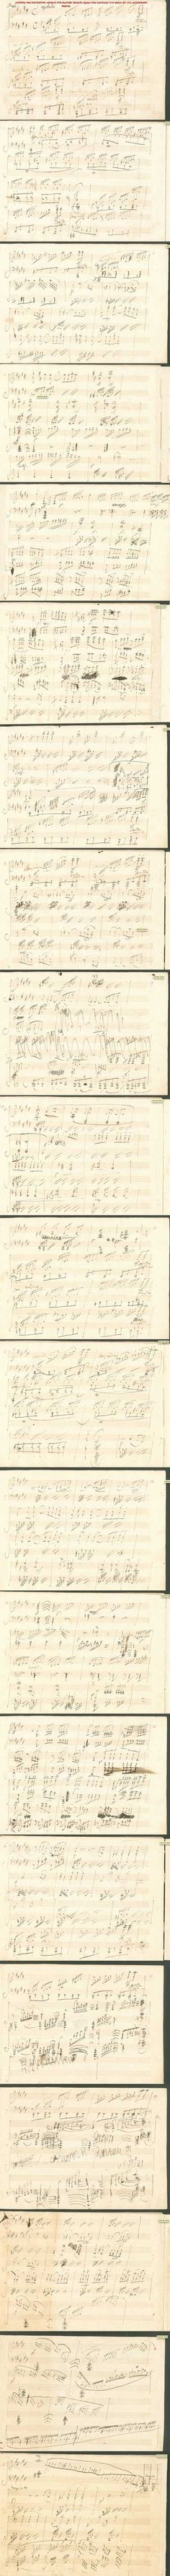 14 Best Beethoven images in 2015 | Sheet music, Calligraphy